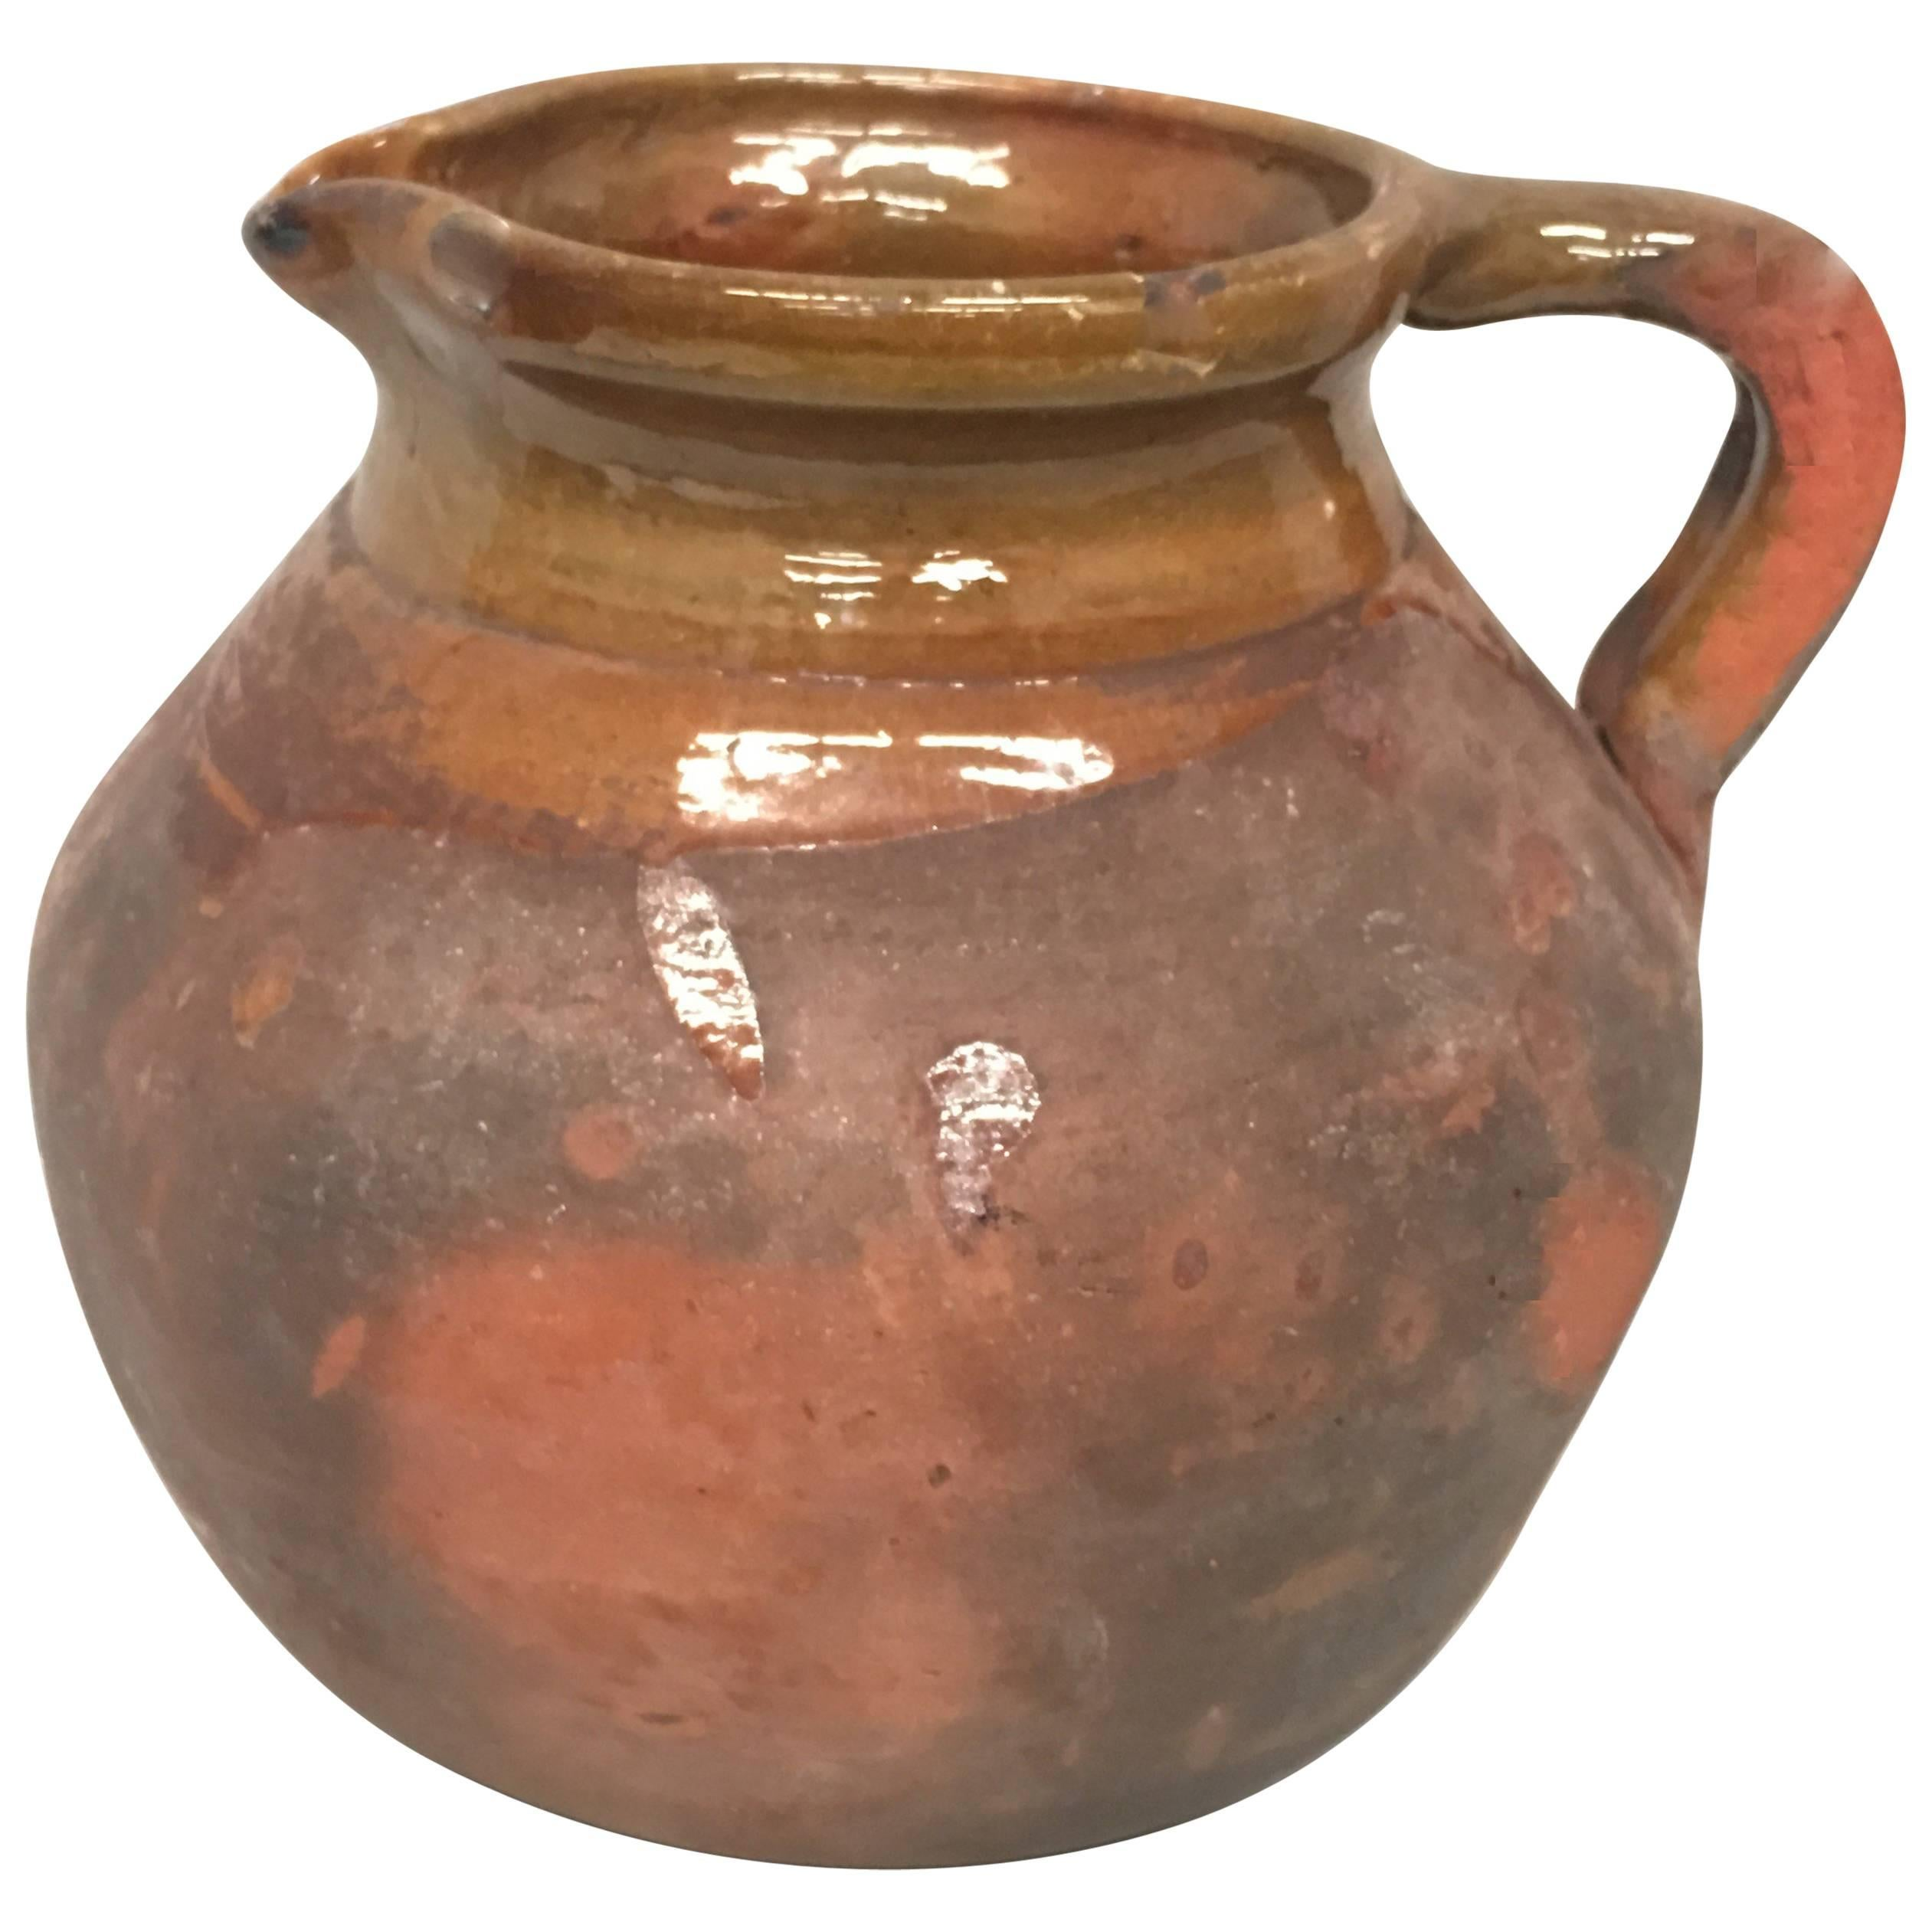 19th Century Spanish Stoneware Terracotta Jug or Pot with Handle